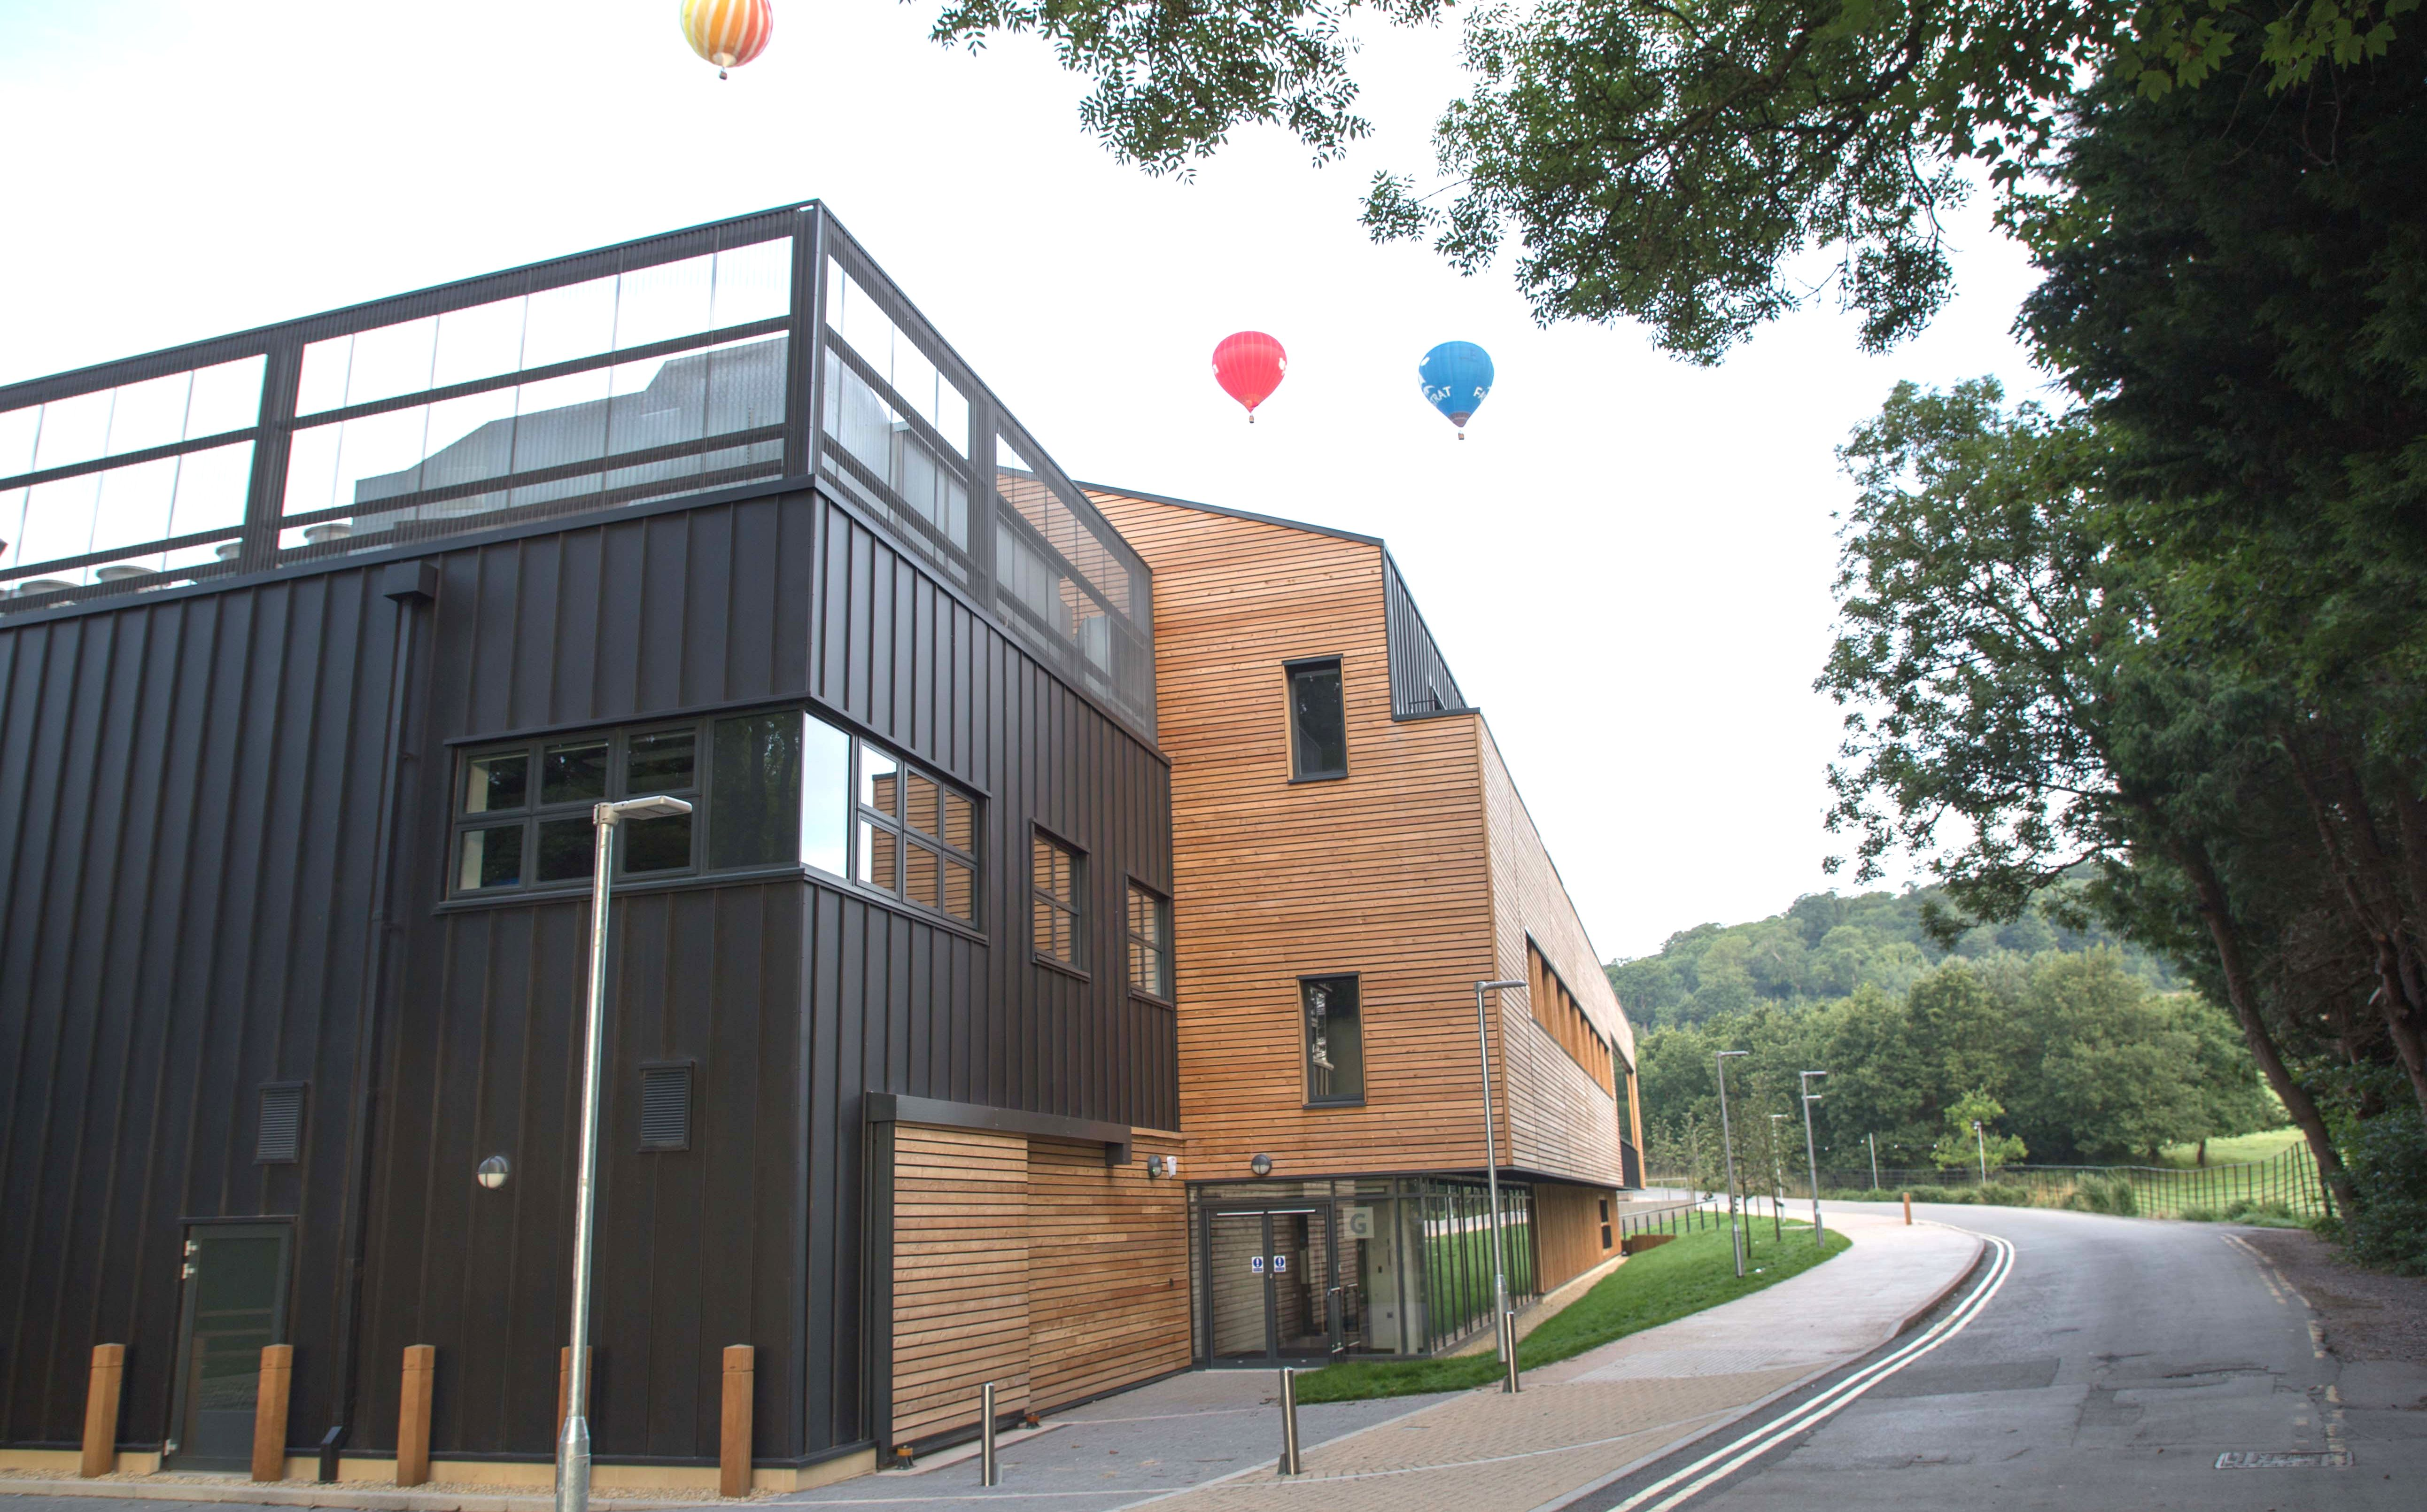 Digital Media Bower Ashton Campus, balloons 2.jpg